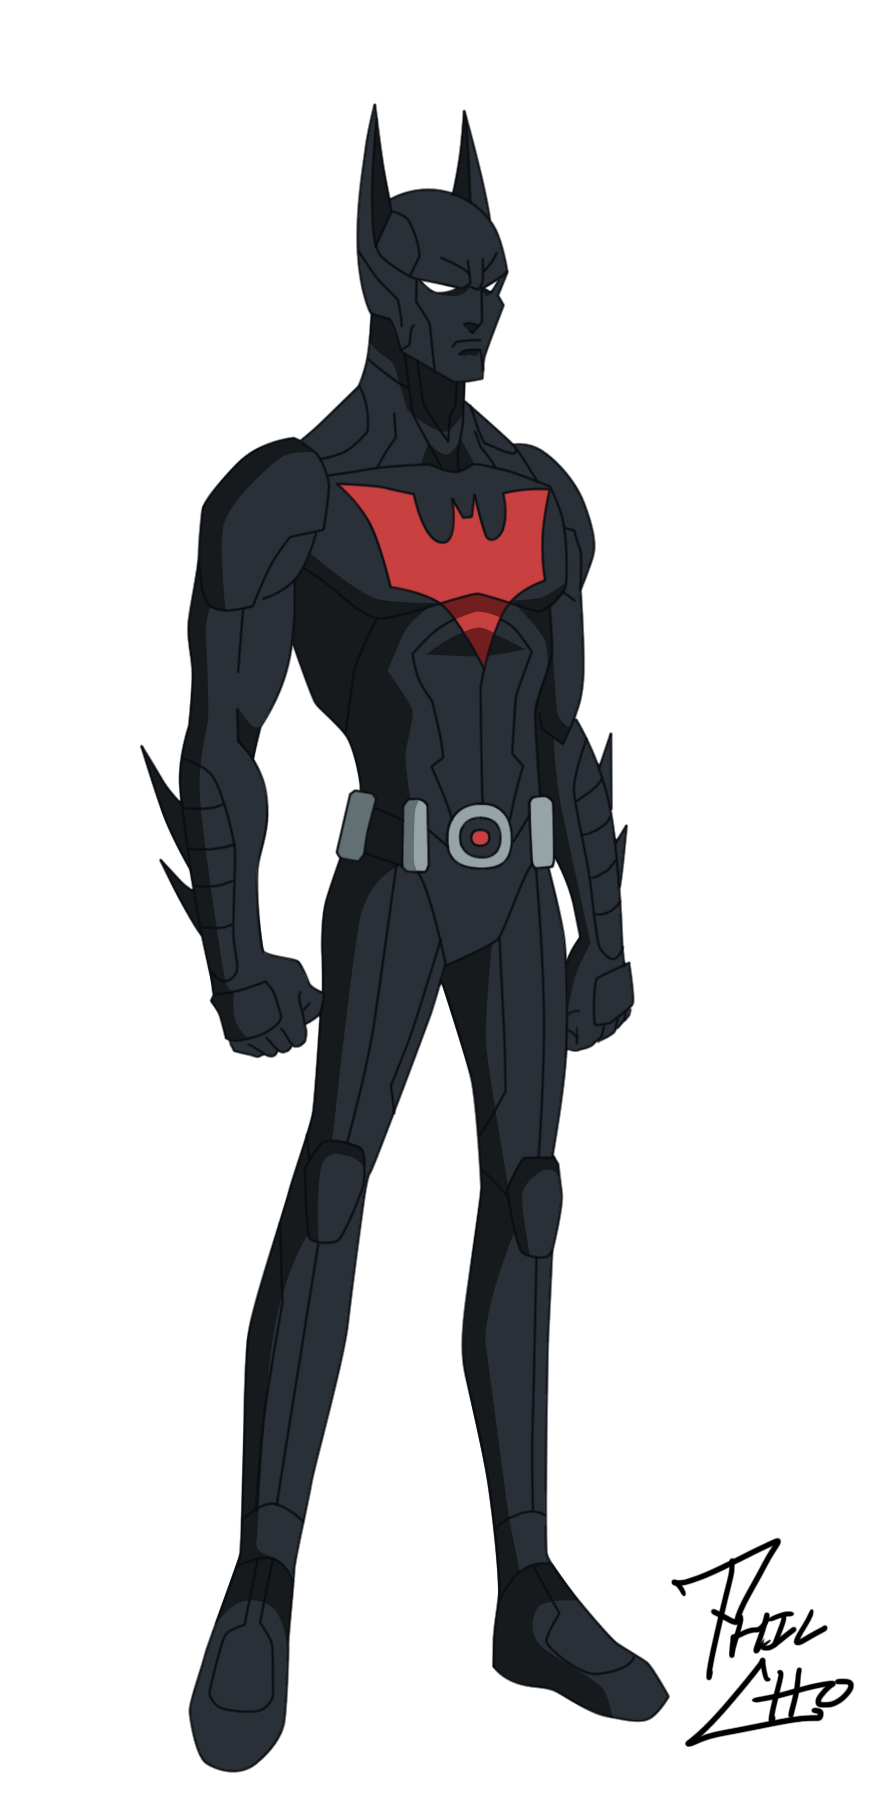 Batman Beyond Terry McGinnis By Phil cho On DeviantArt